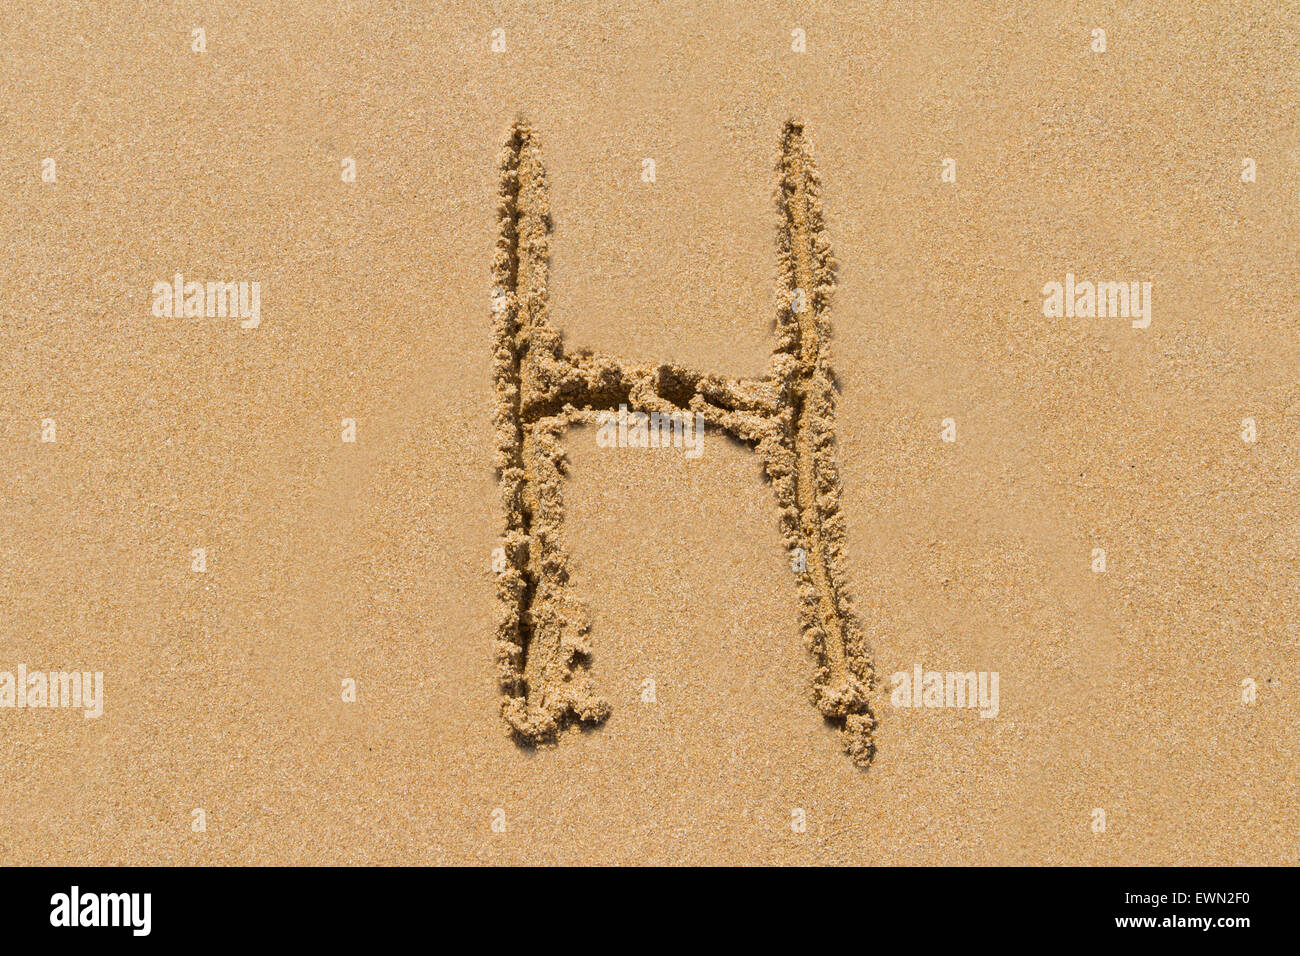 Letter H of the alphabet written on sand with upper case. - Stock Image